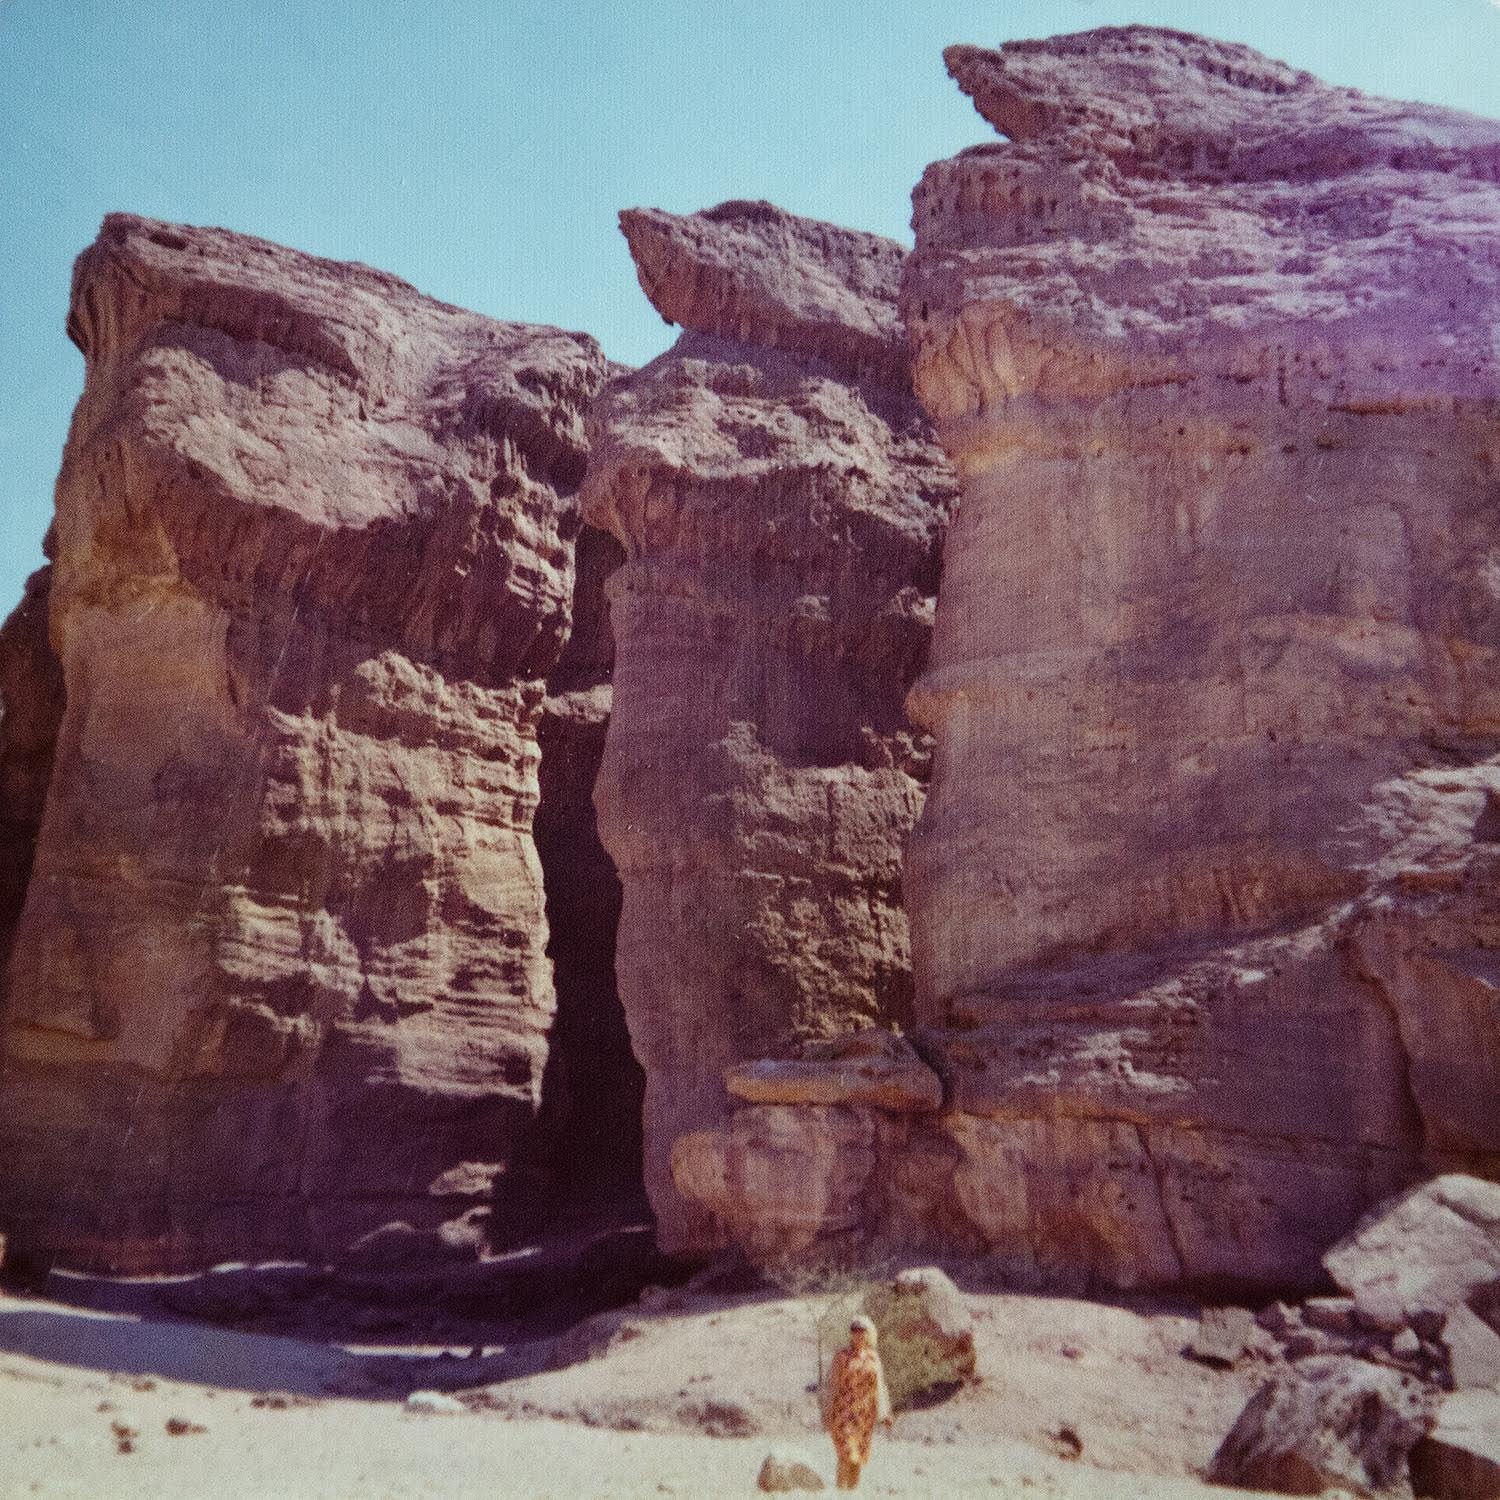 Pillars of Solomon, Eilat Israel, 1975. Probably Kodacolor II film. Scanned from a print.